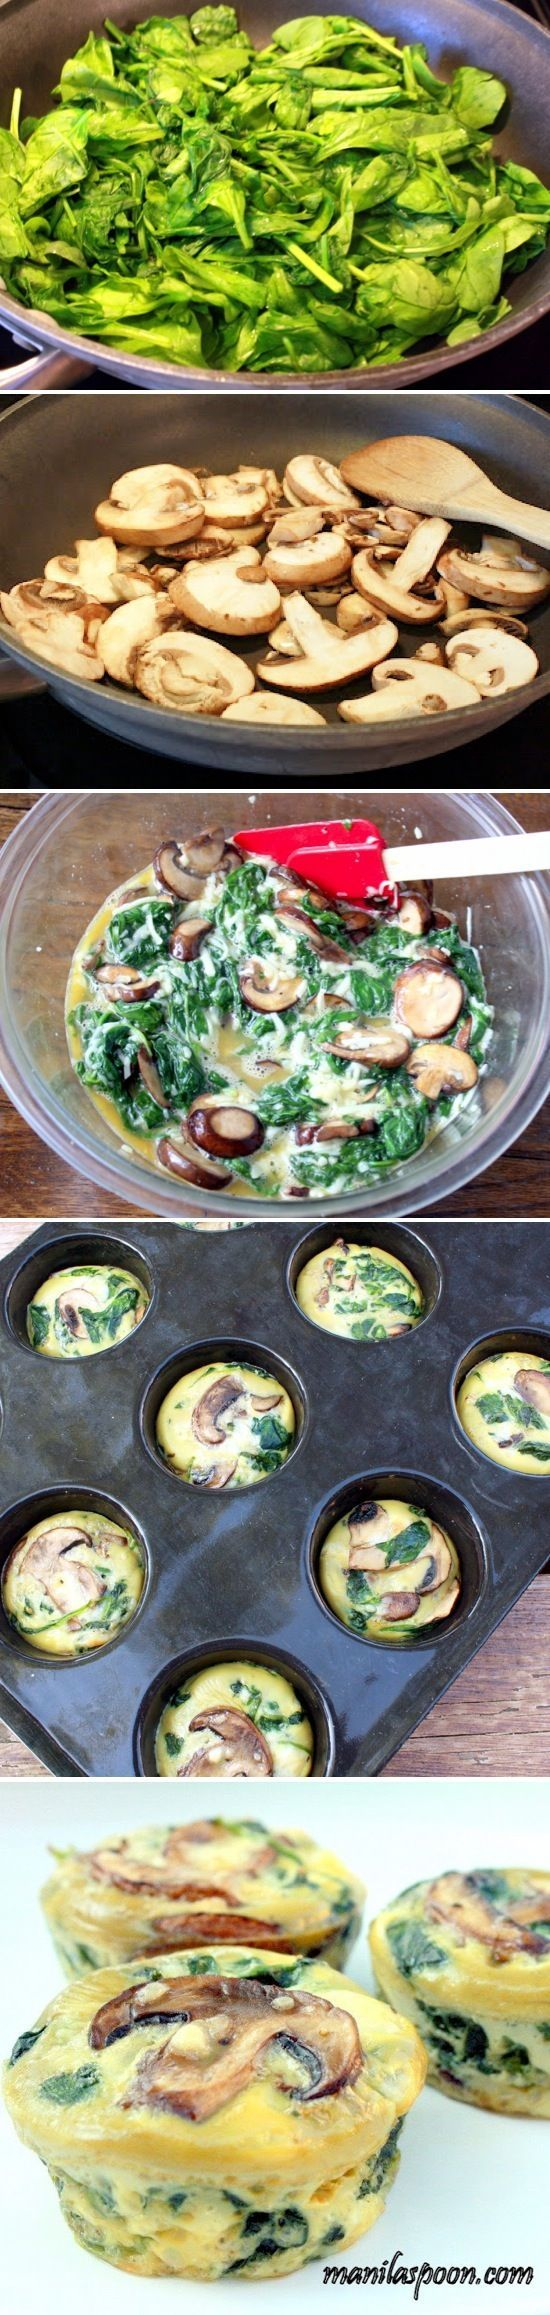 Spinach Egg Cups - cook them all then FREEZE in 2's for easy microwaving later in the week. Brekkie & protein SNACKS.